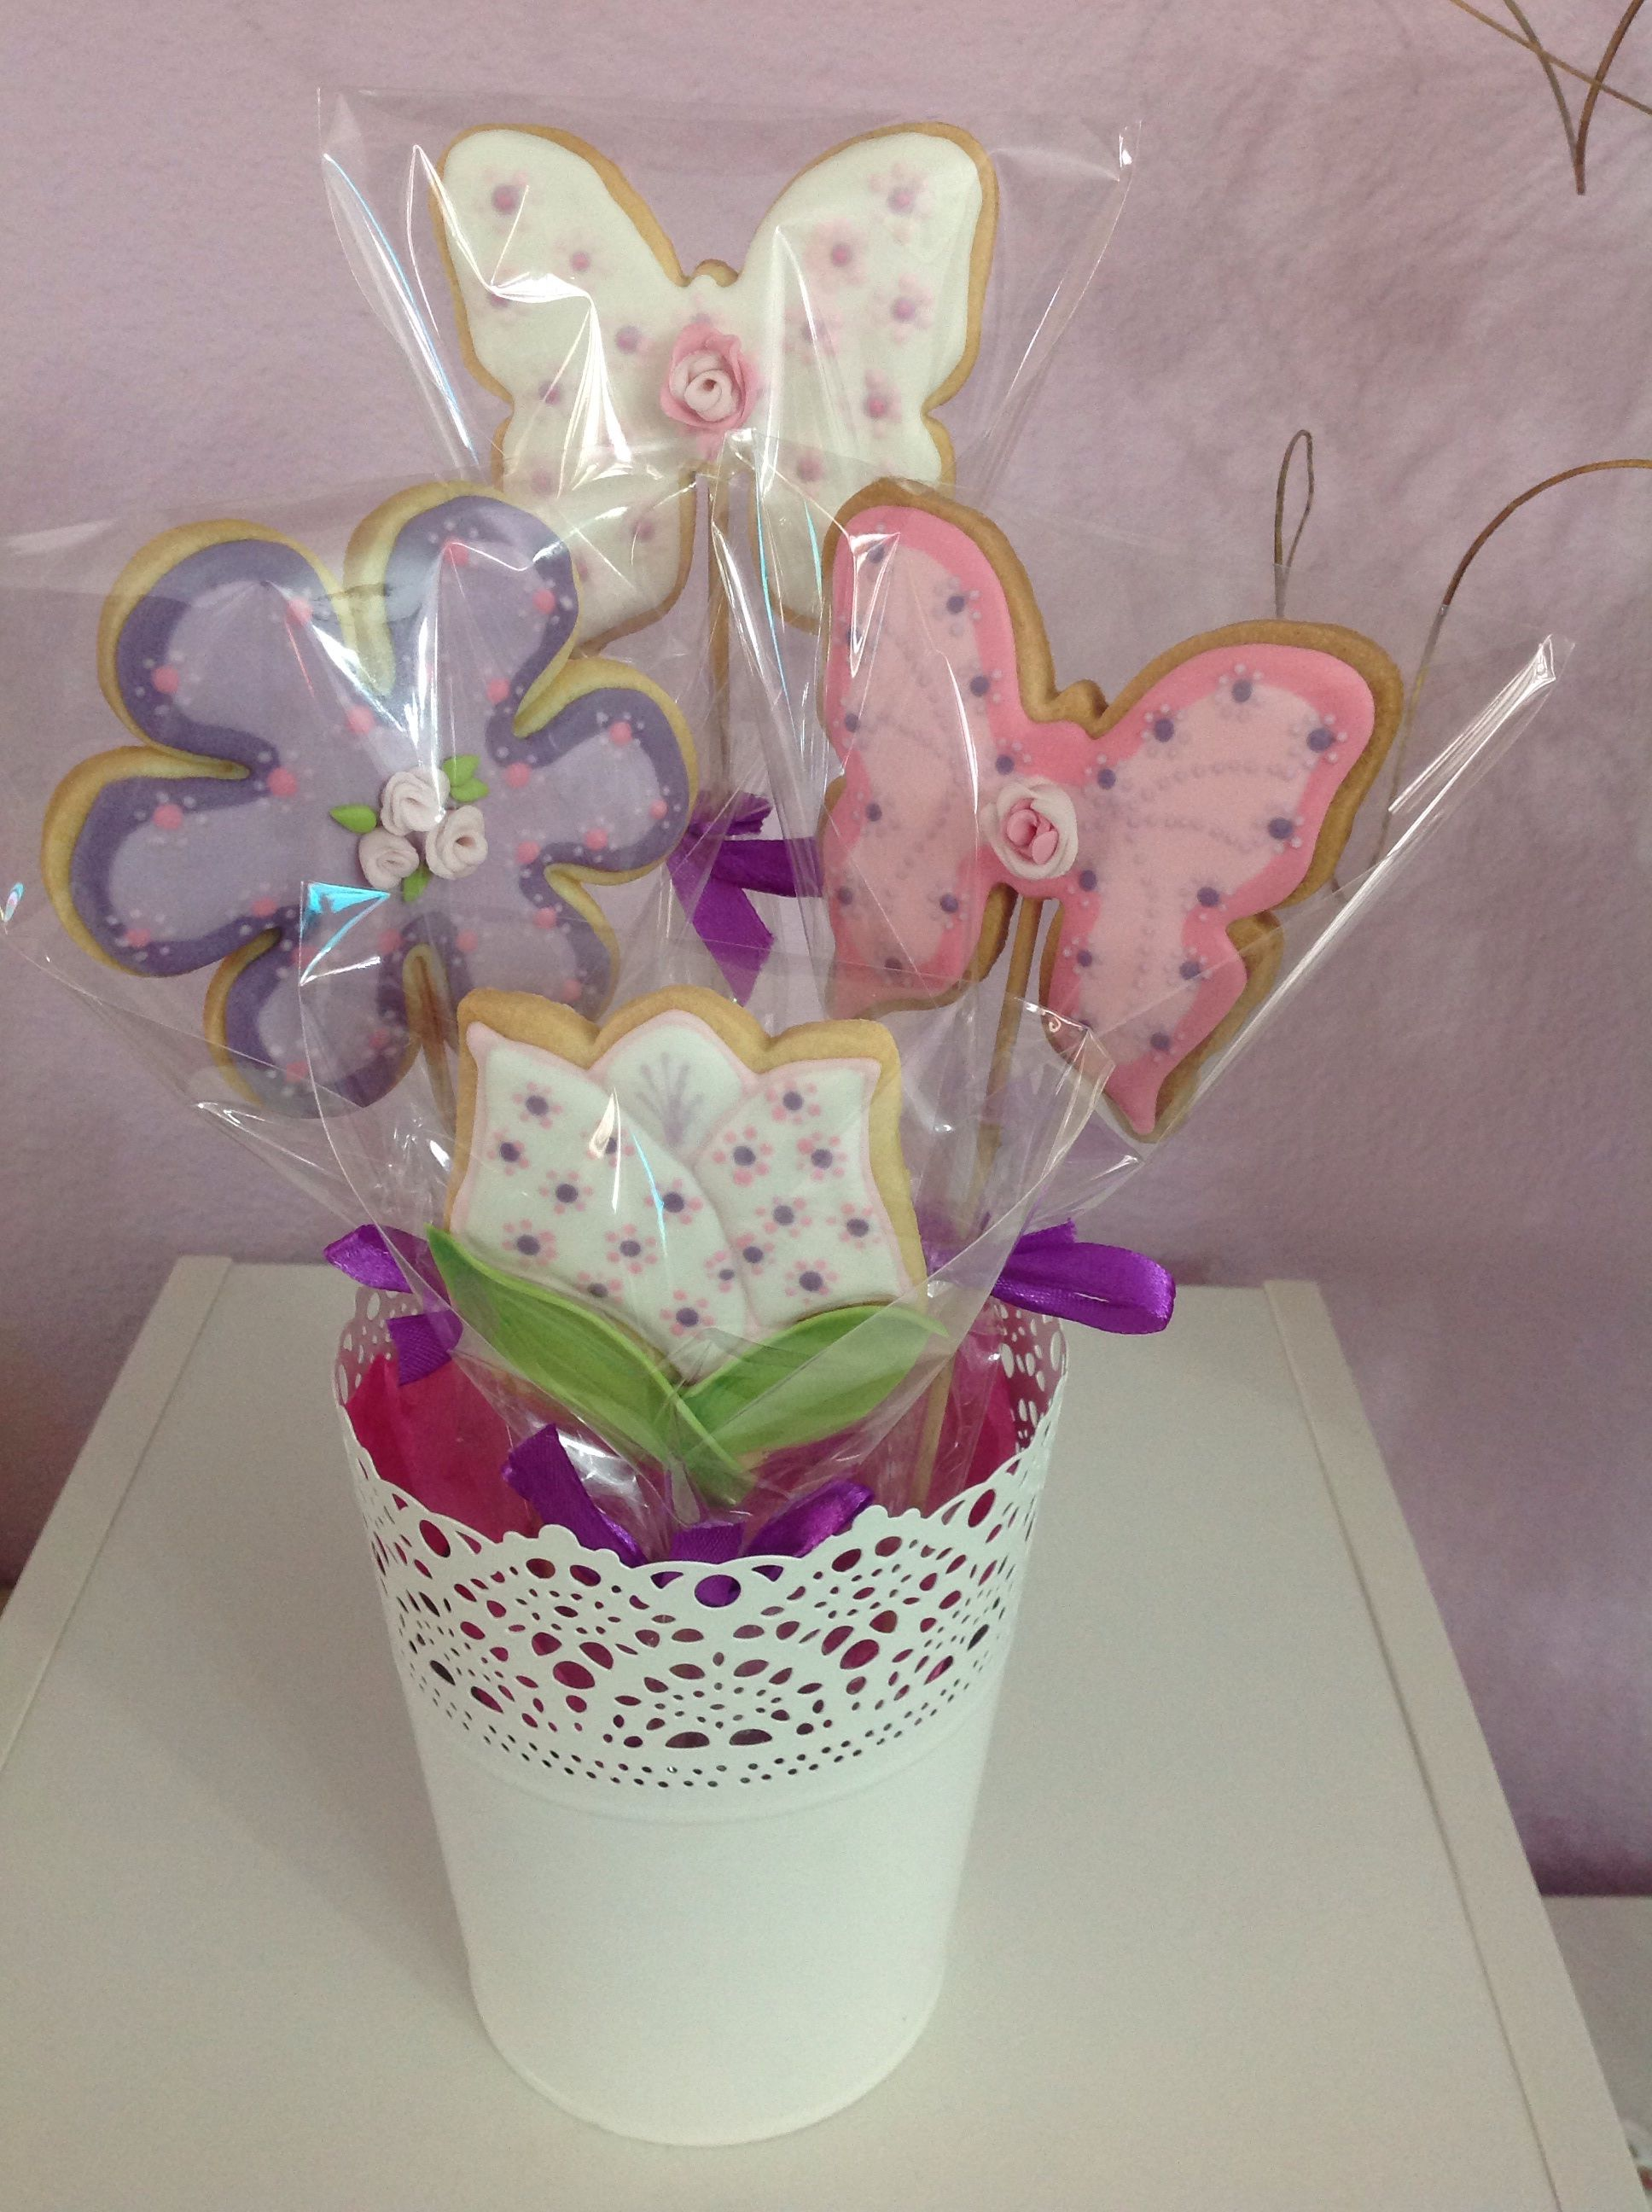 Butterflies and flowers icing cookies.